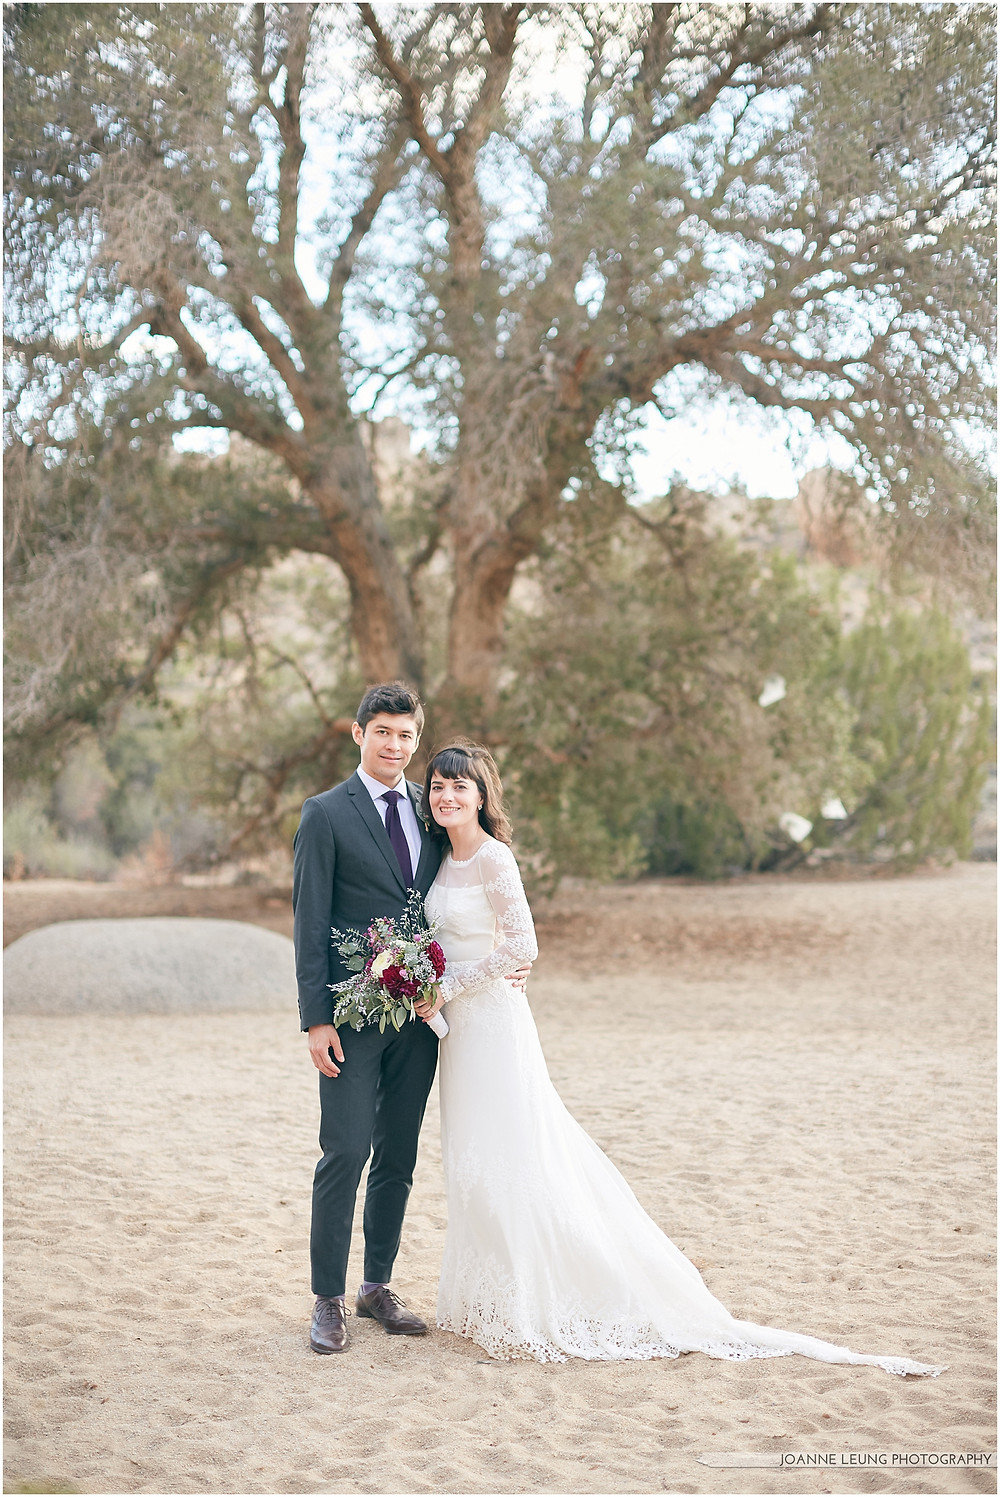 Joshua Tree Live Oak Wedding untraditional nature rocks amazing bridal portrait kiss sunset old oak tree wedding posing